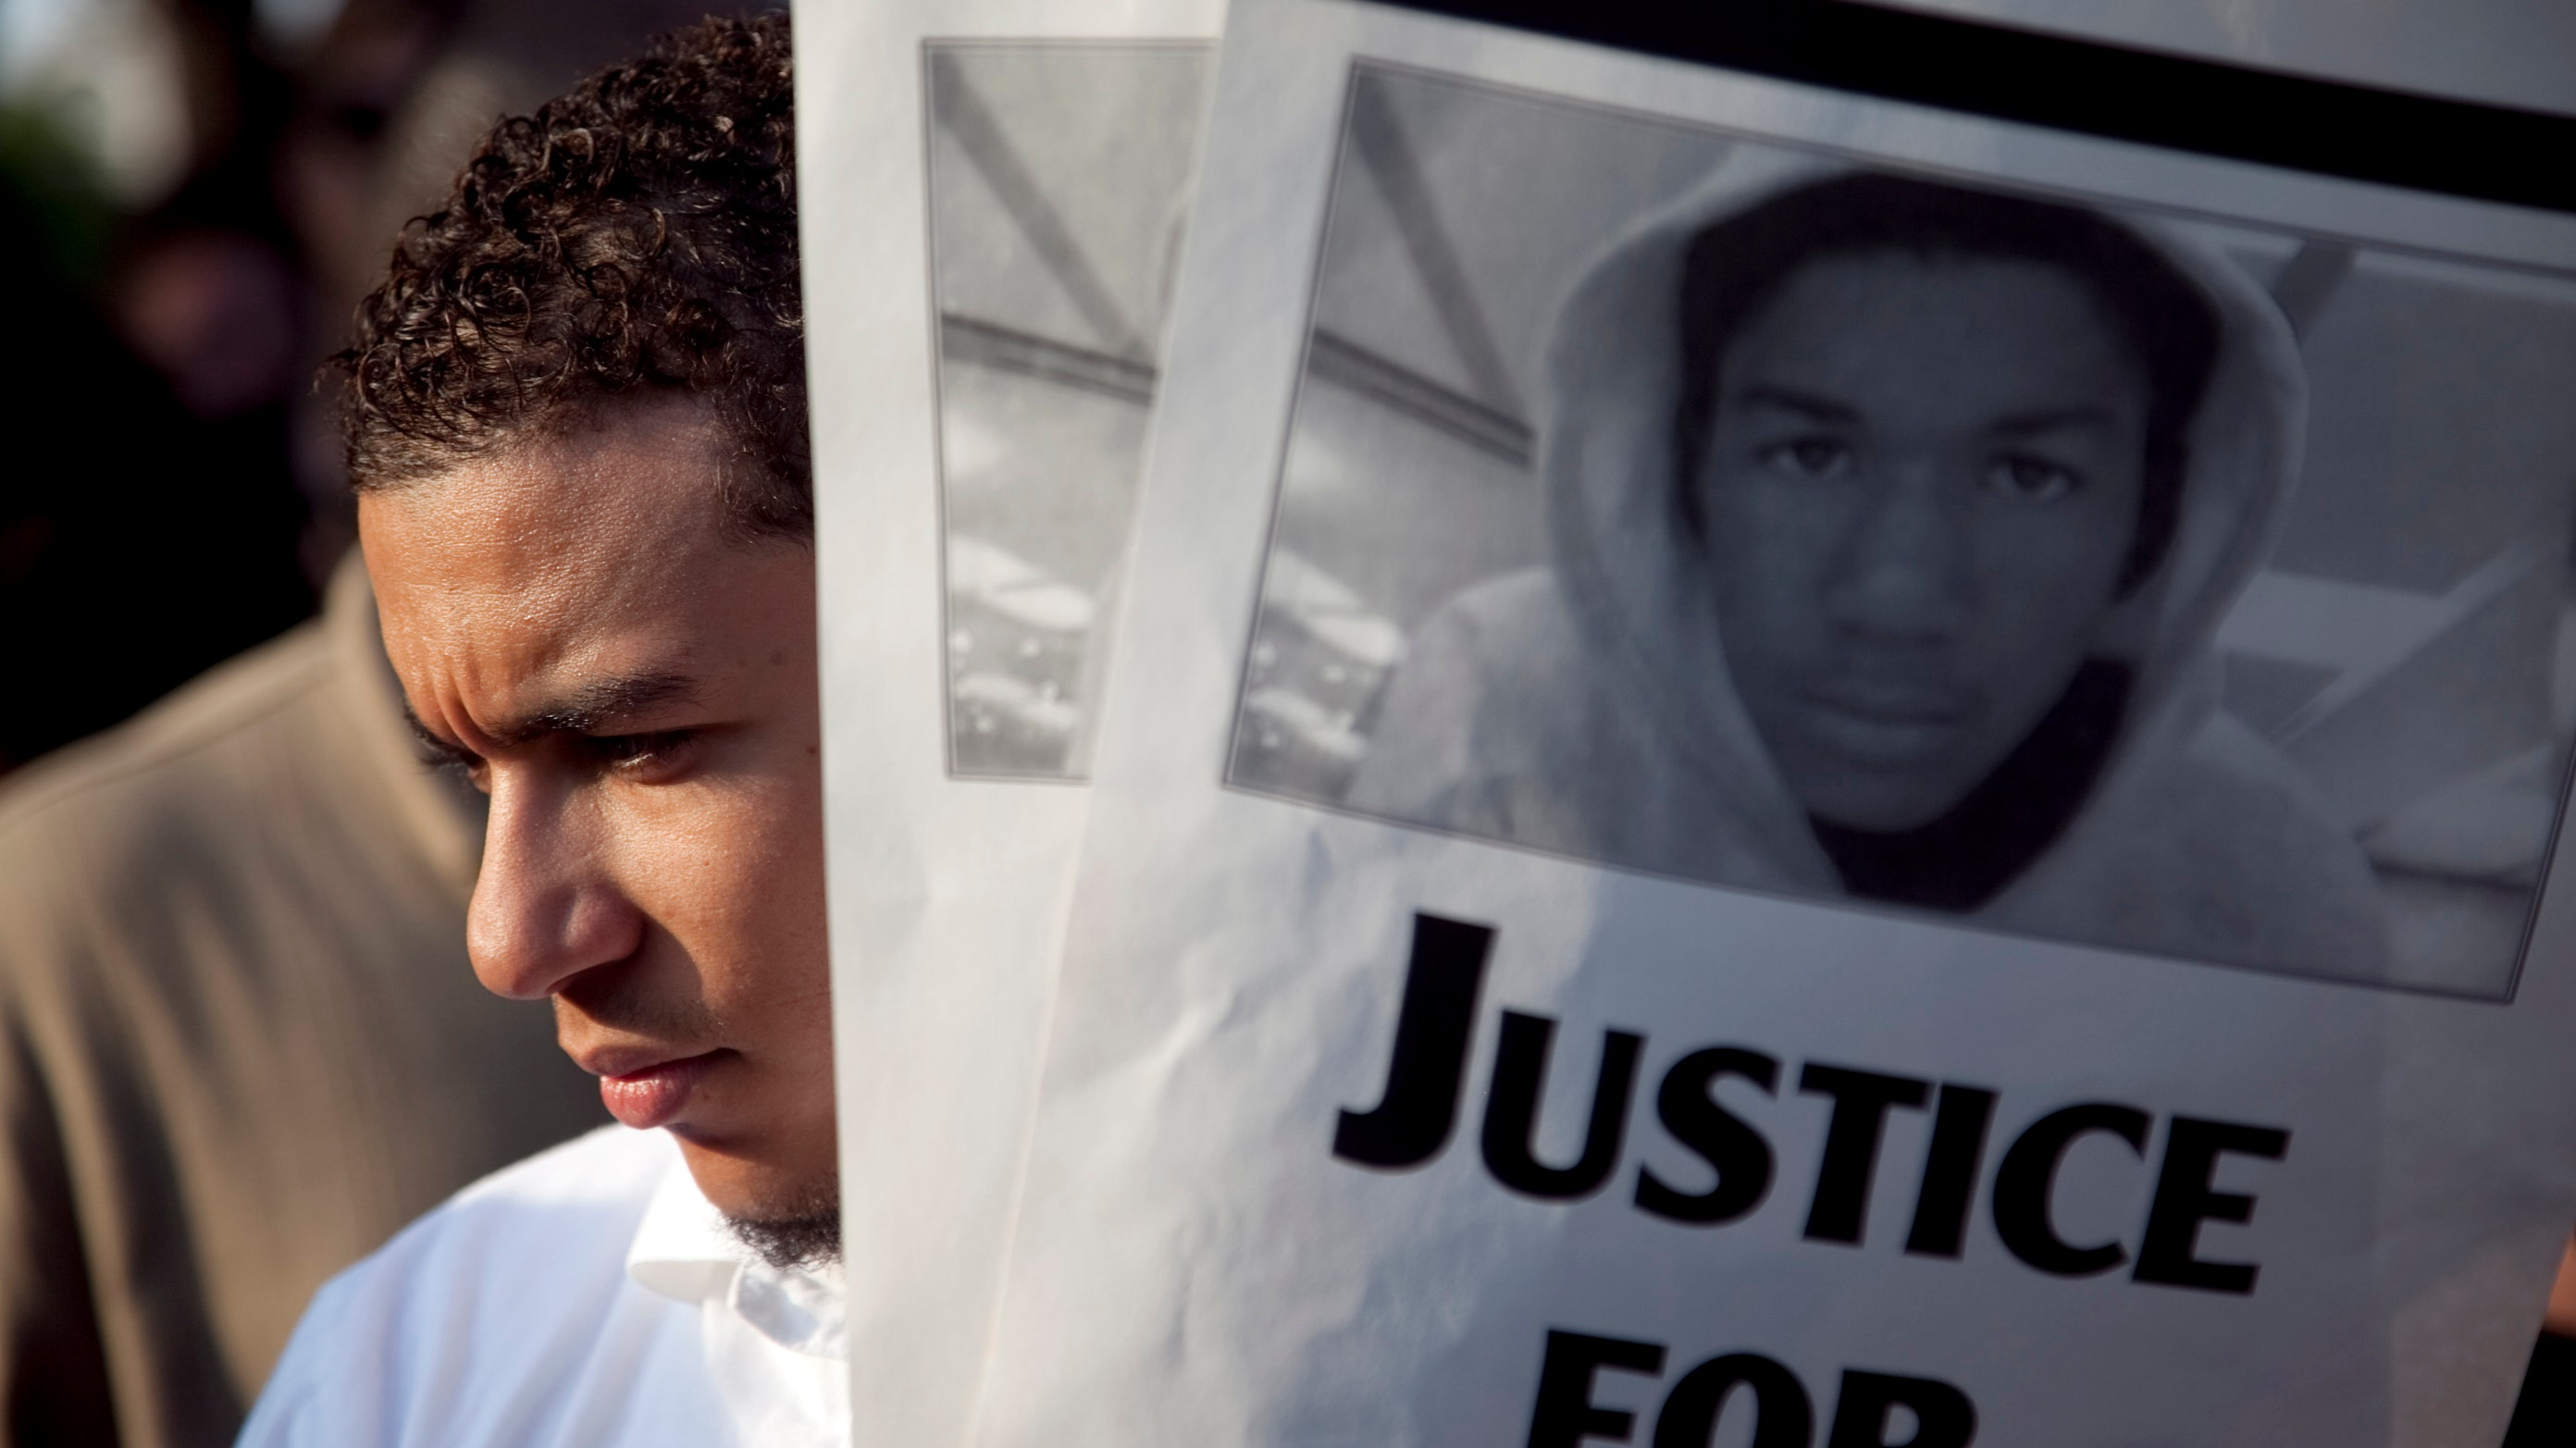 travyon martins case The reverberations of the killing of black teenager trayvon martin by  as with  many high-profile cases, the zimmerman jurors were screened.